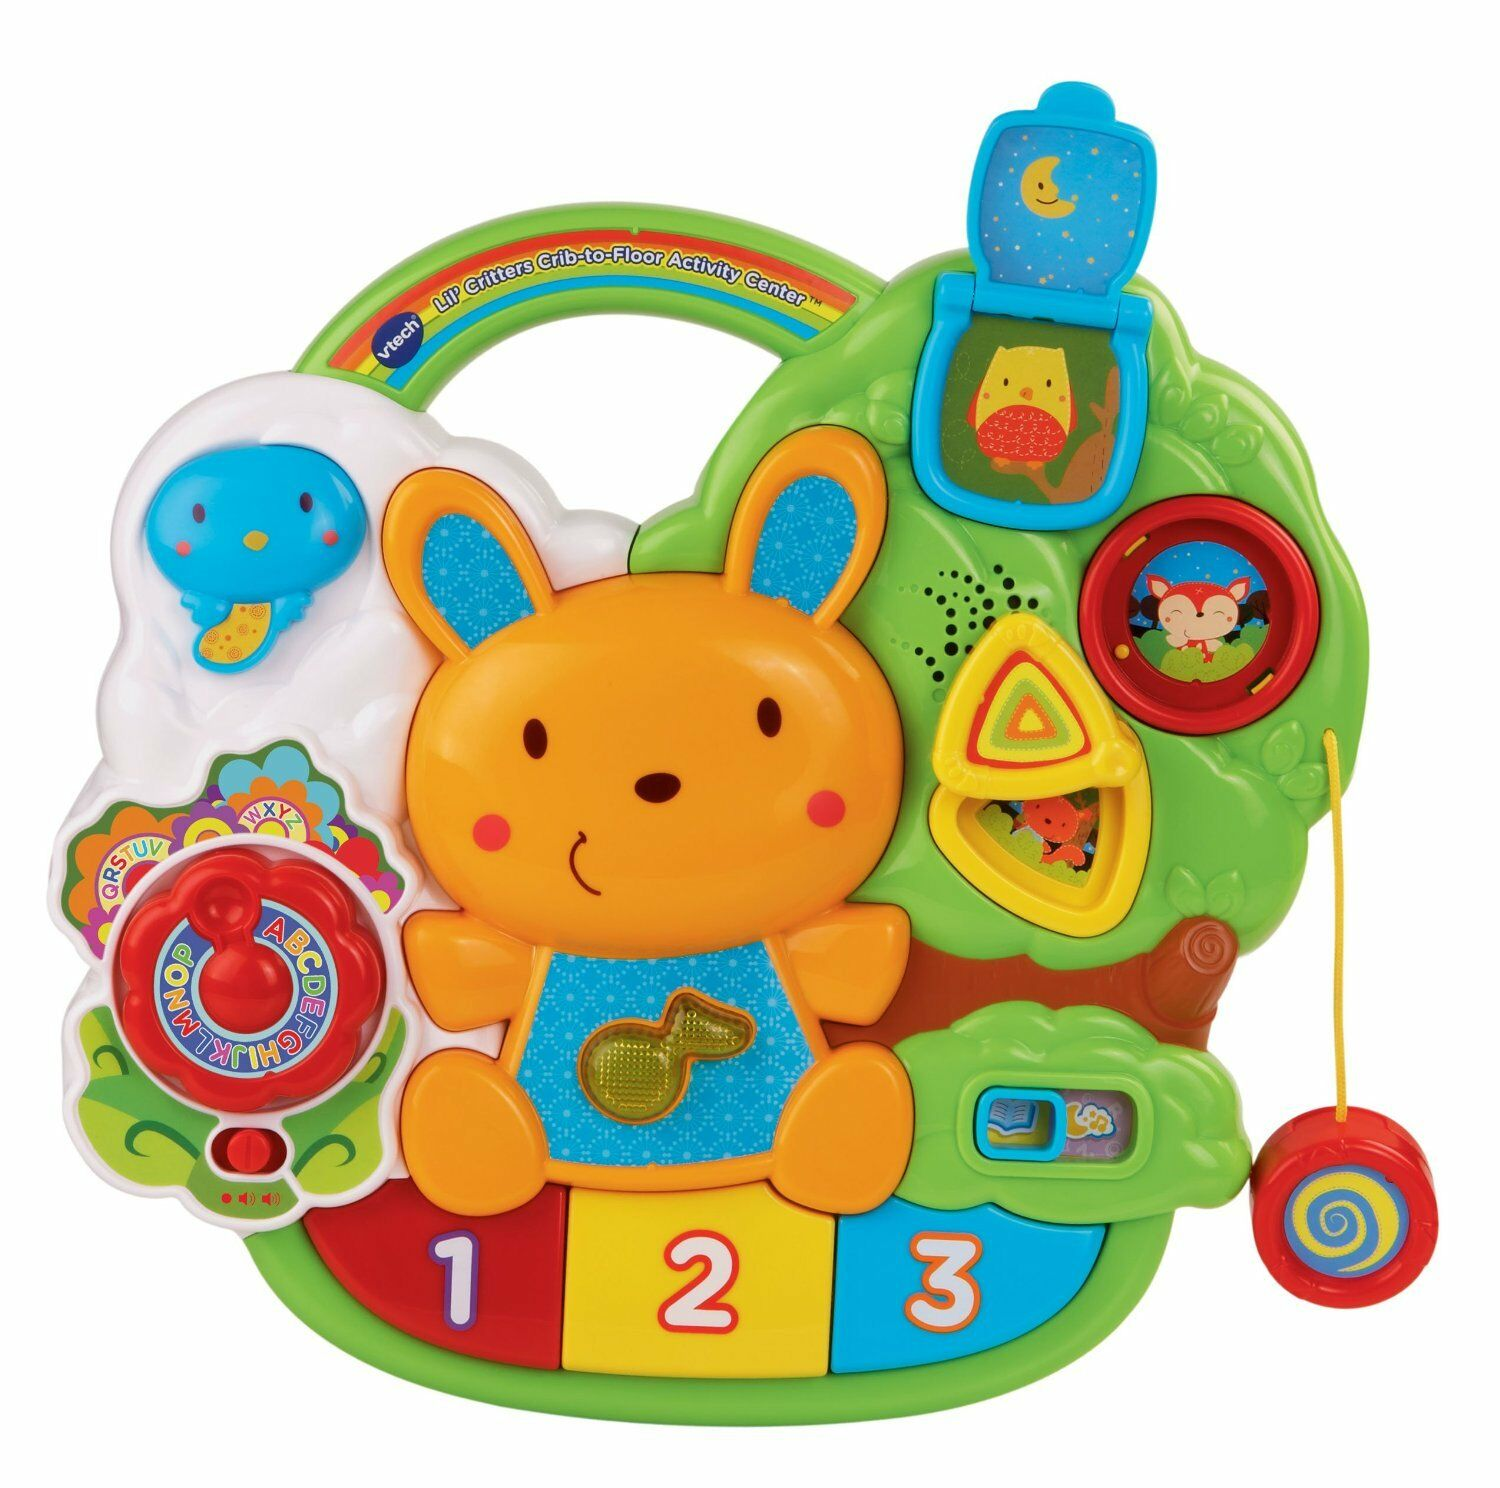 Vtech Lil Critters Crib to Floor Activity center educational toy